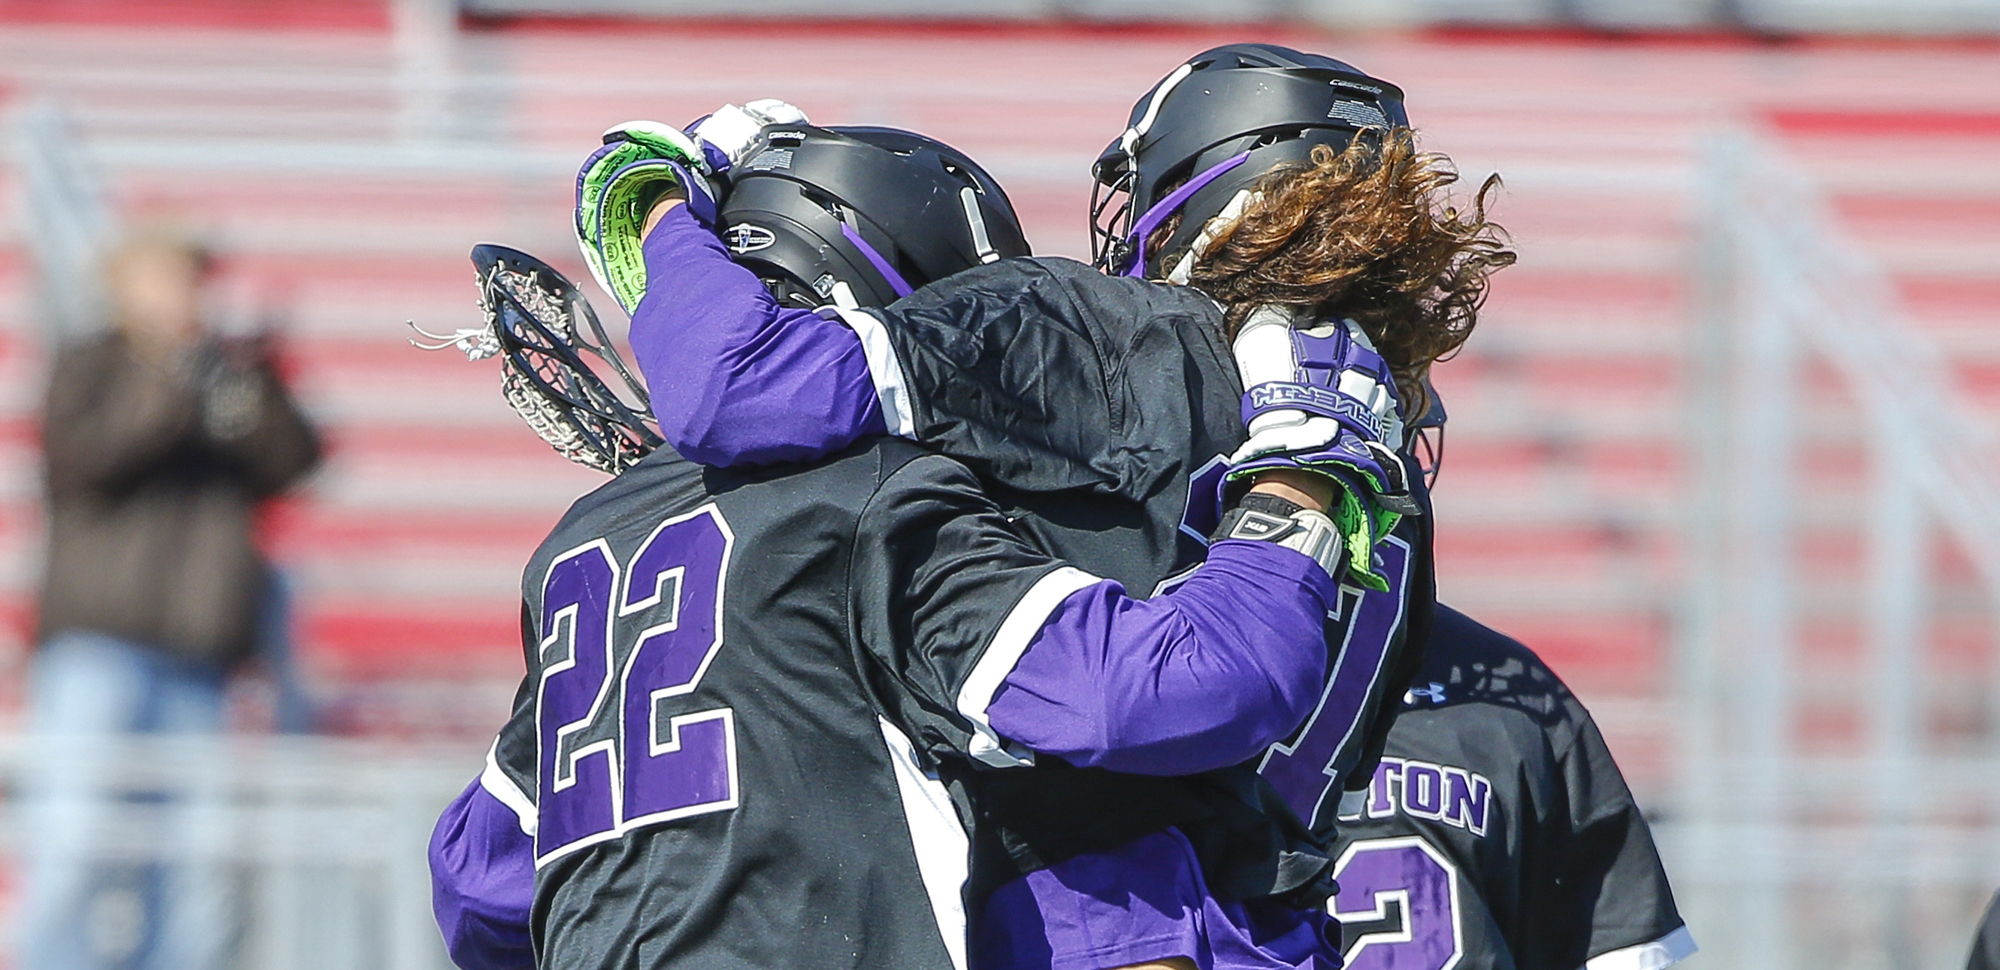 Friday's Men's Lacrosse Game Vs. SUNY Potsdam Rescheduled For March 28 In Scranton